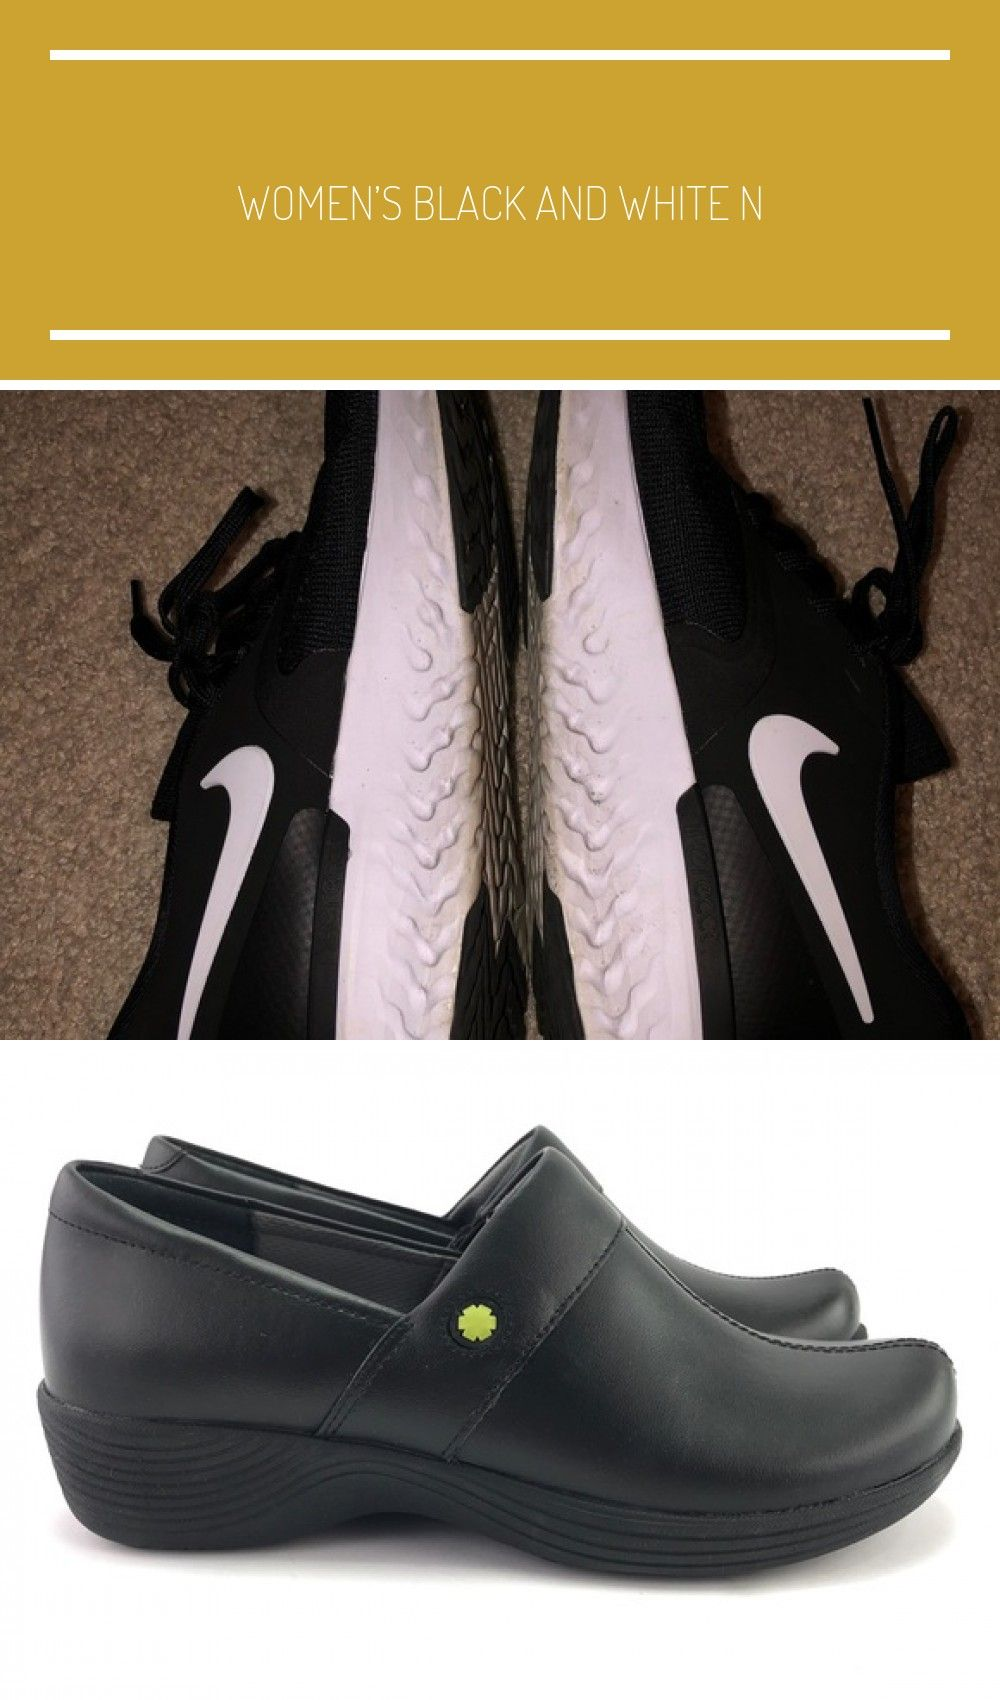 Women's Black and White Nike's Size 7 Good for athletic wear